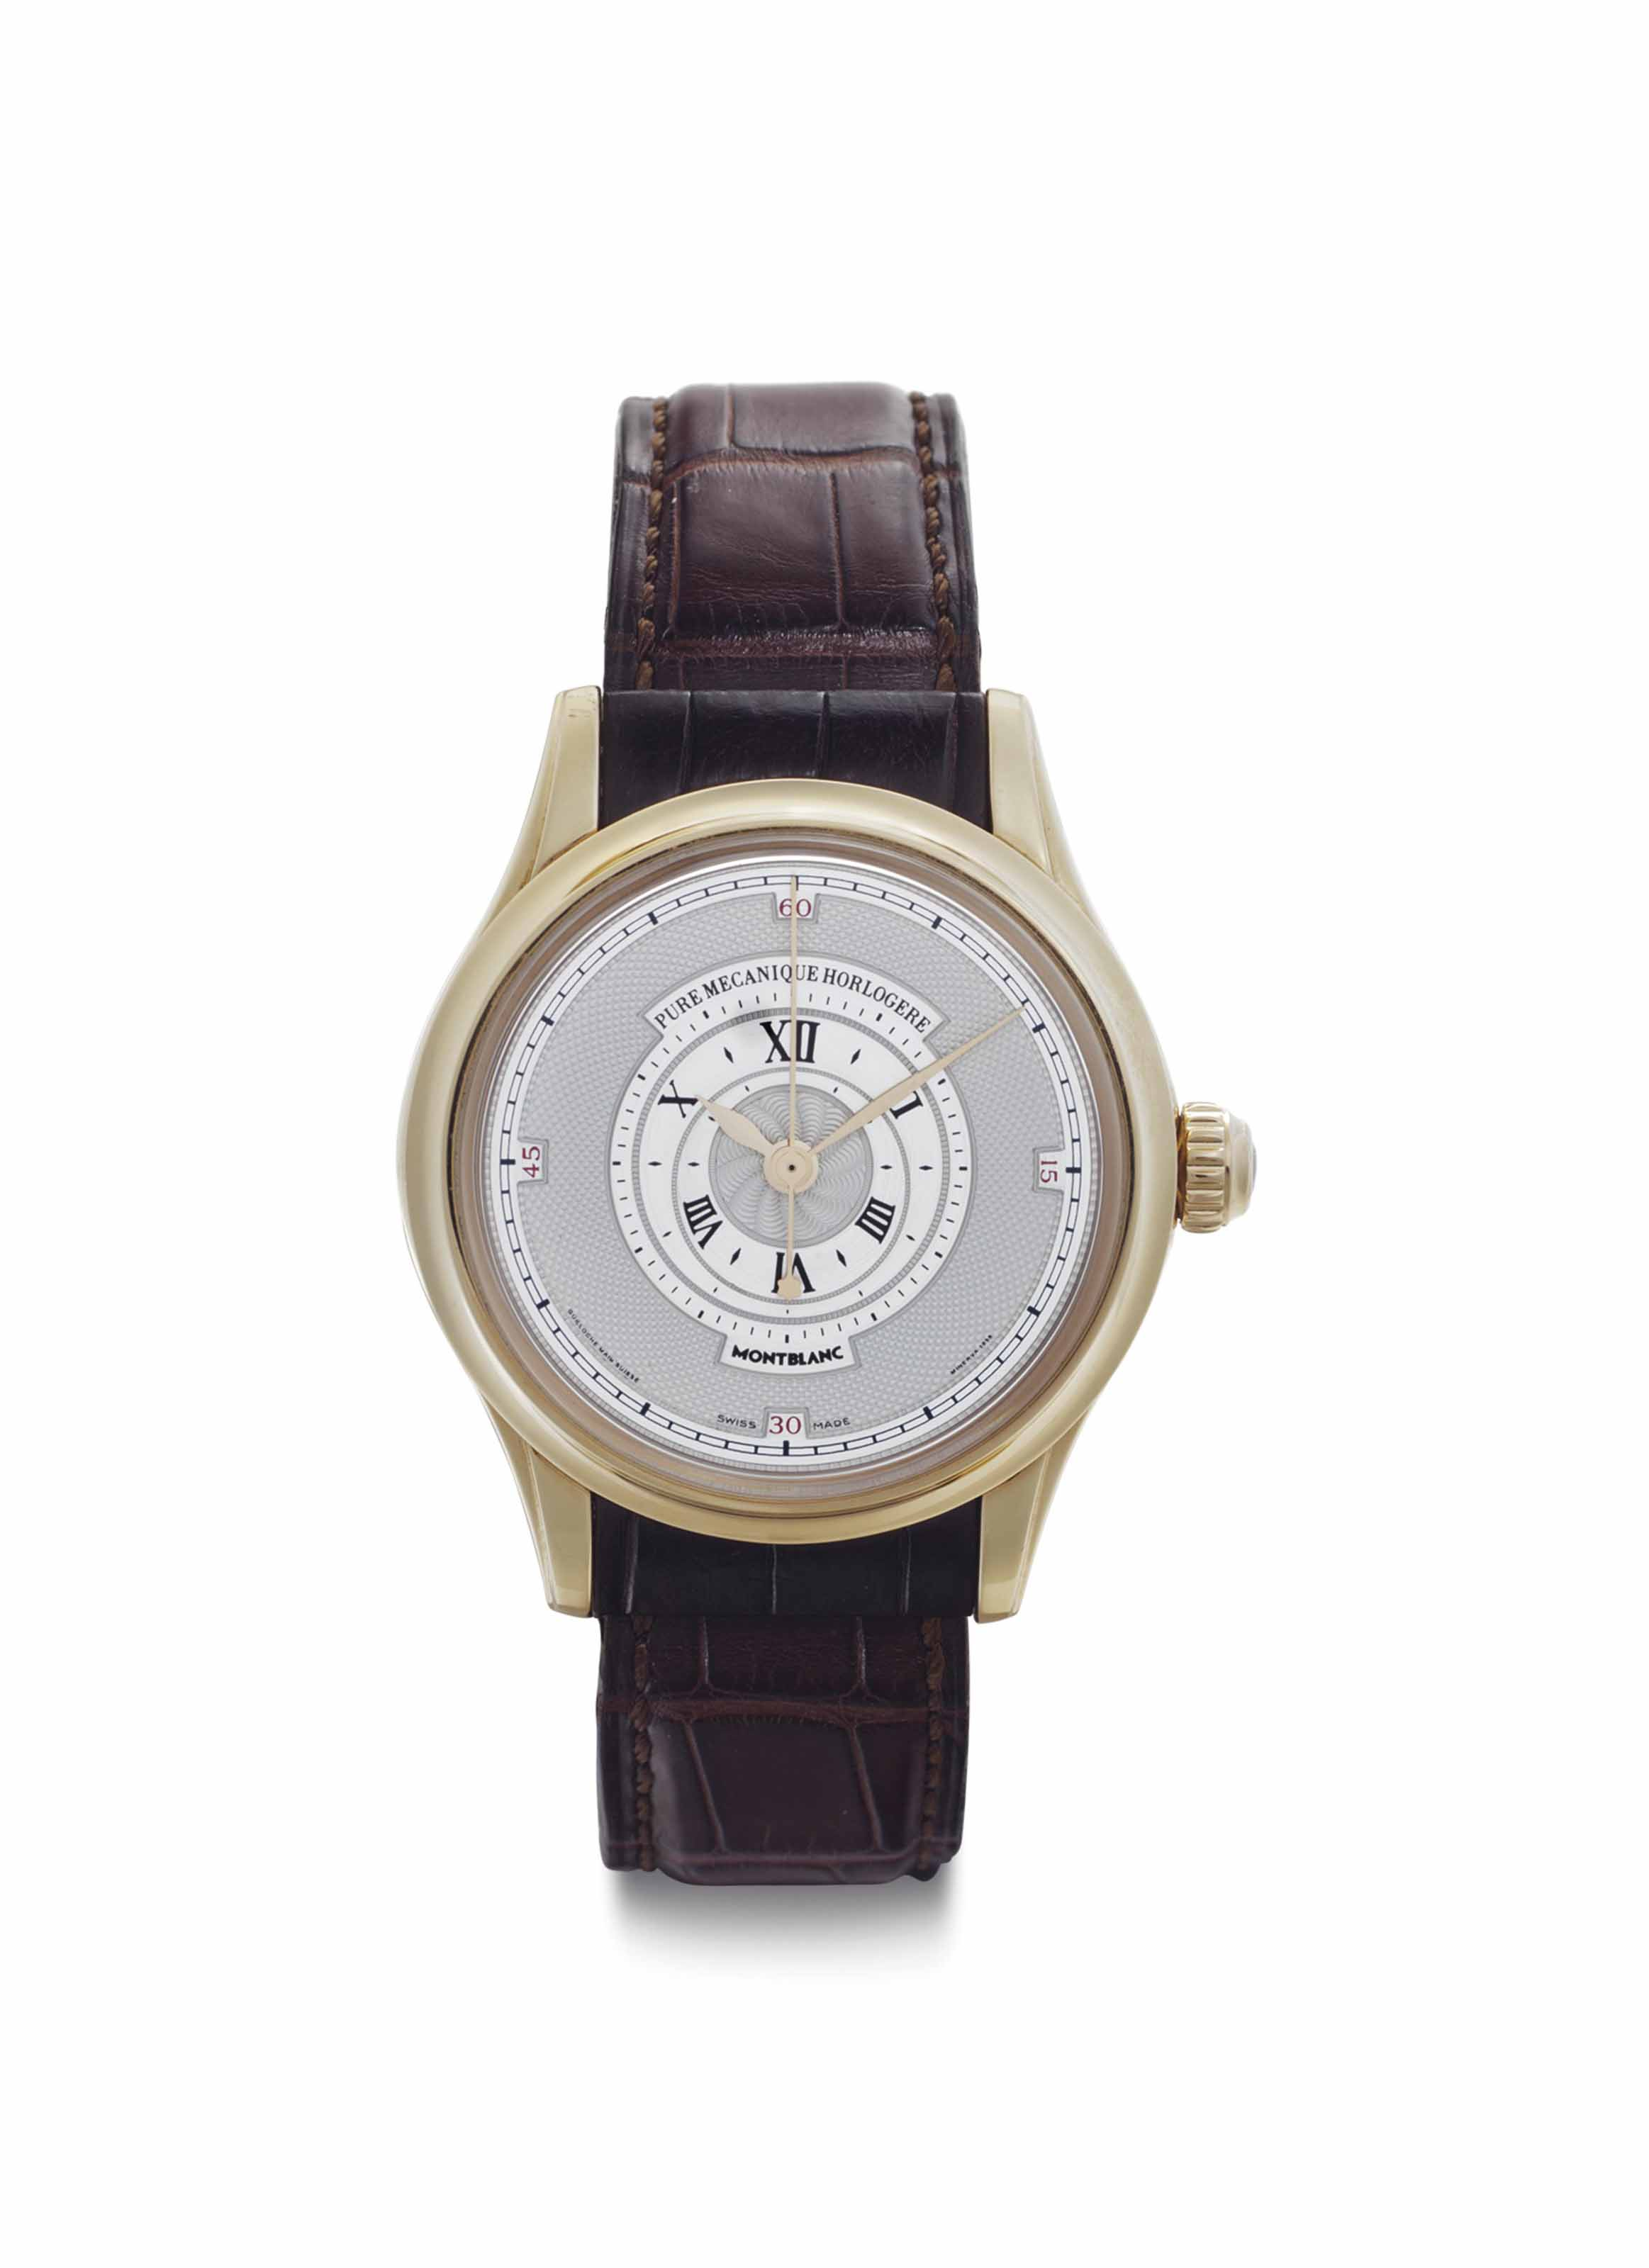 Montblanc. A Limited Edition 18k Pink Gold Wristwatch with Center Seconds